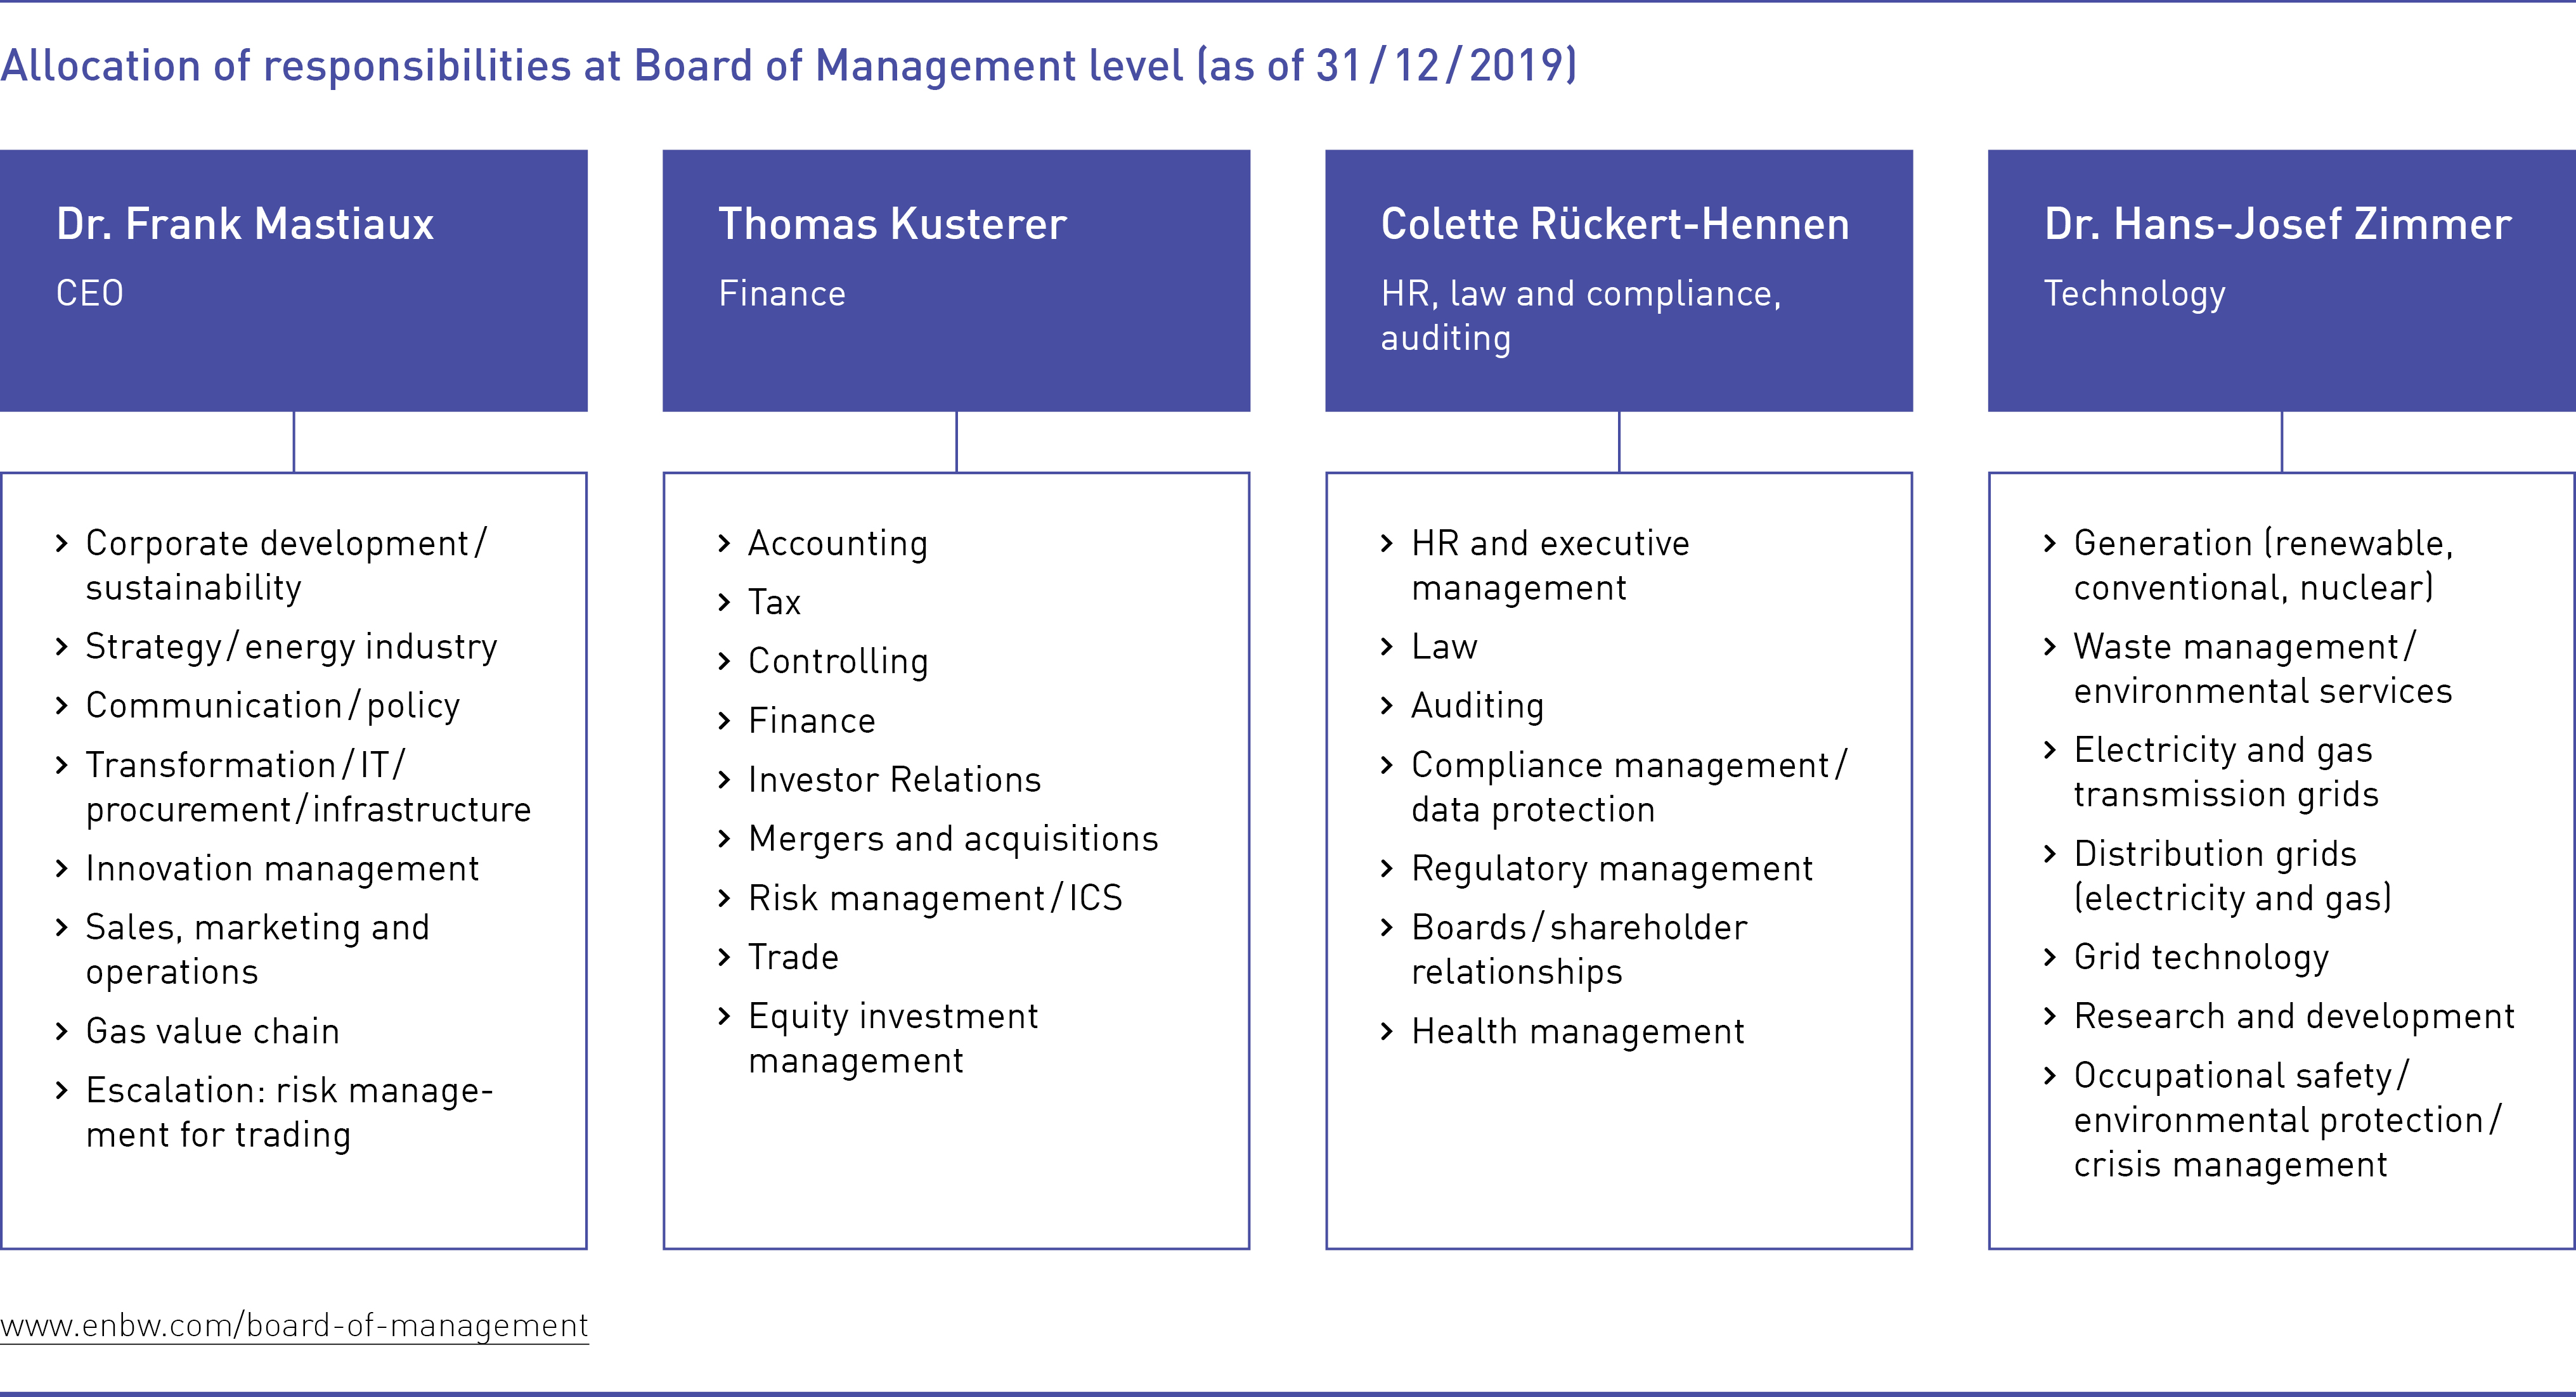 Allocation of responsibilities at Board of Management level 31.12.2019